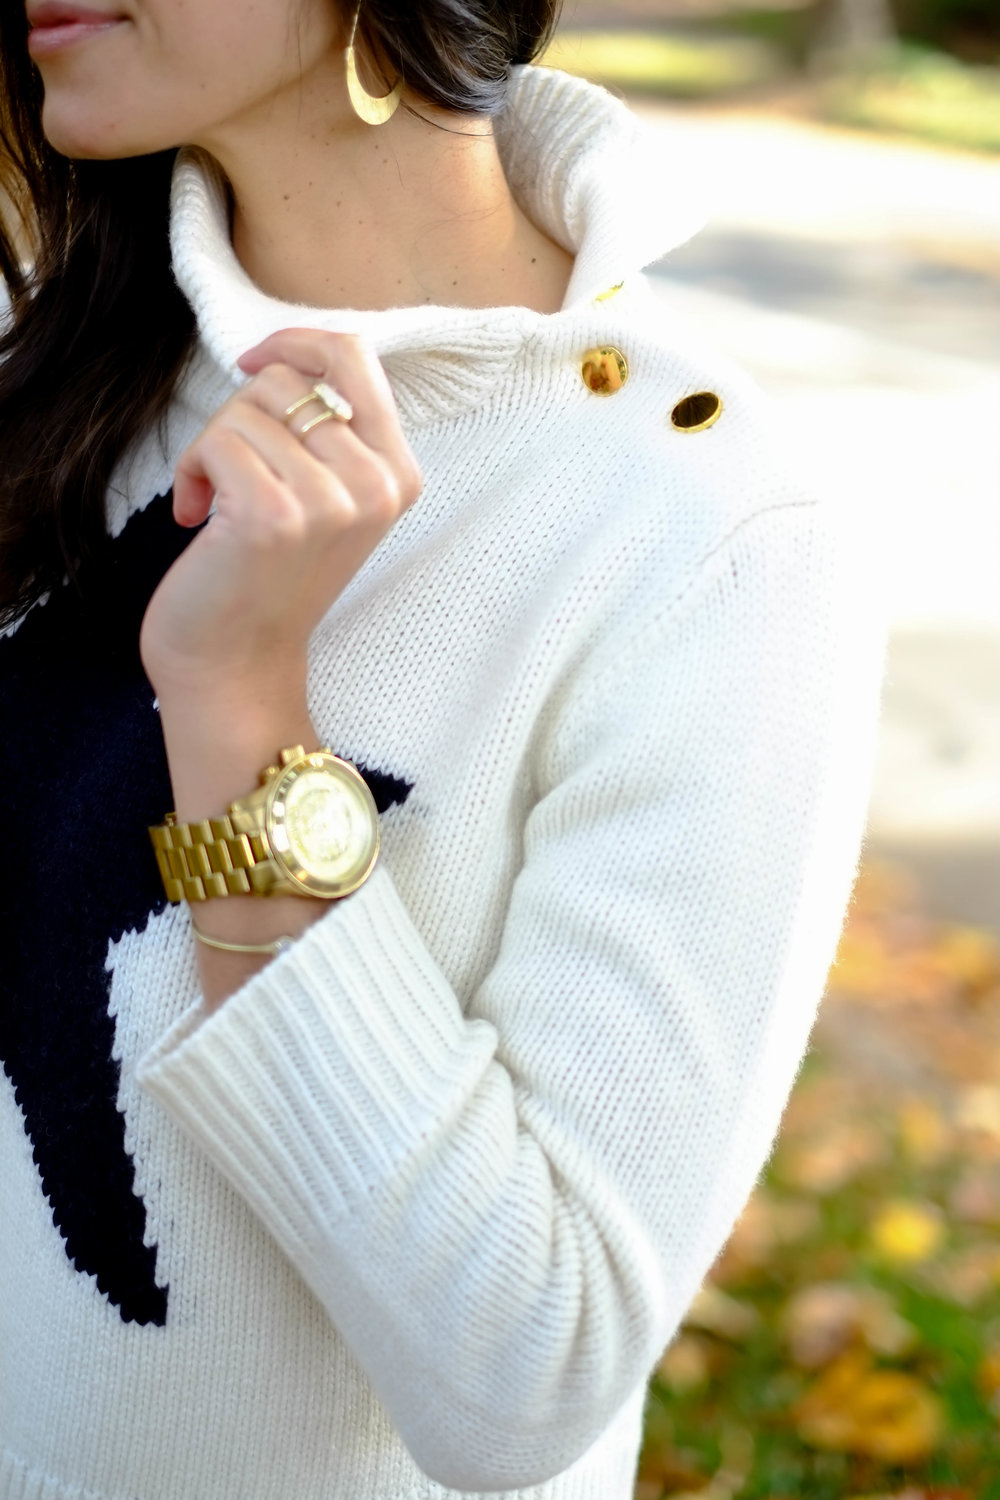 Kate-spade-sweater-lauren-schwaiger-style-blog.jpg